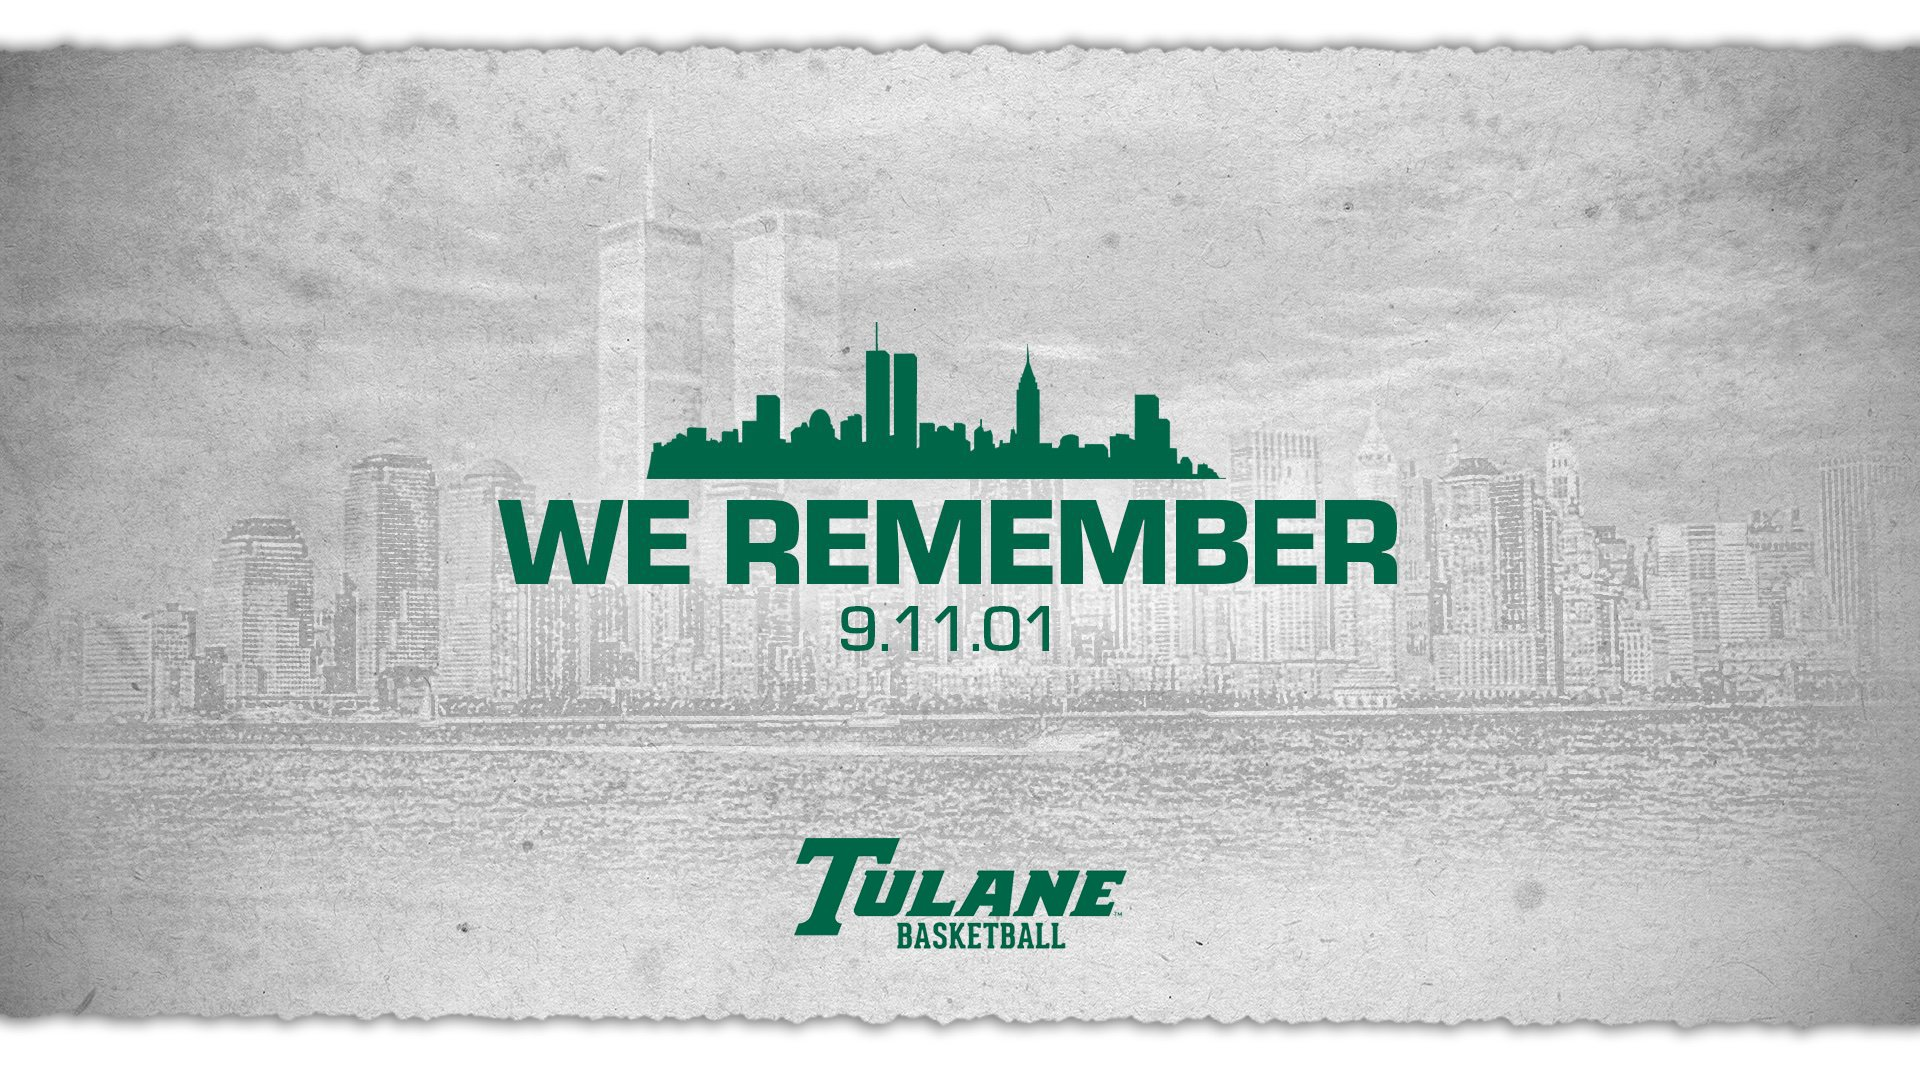 Tulane Green Wave NCAA Basketball: #NeverForget the tragedy and let us all remember the unity that followed ��.  Tweet...